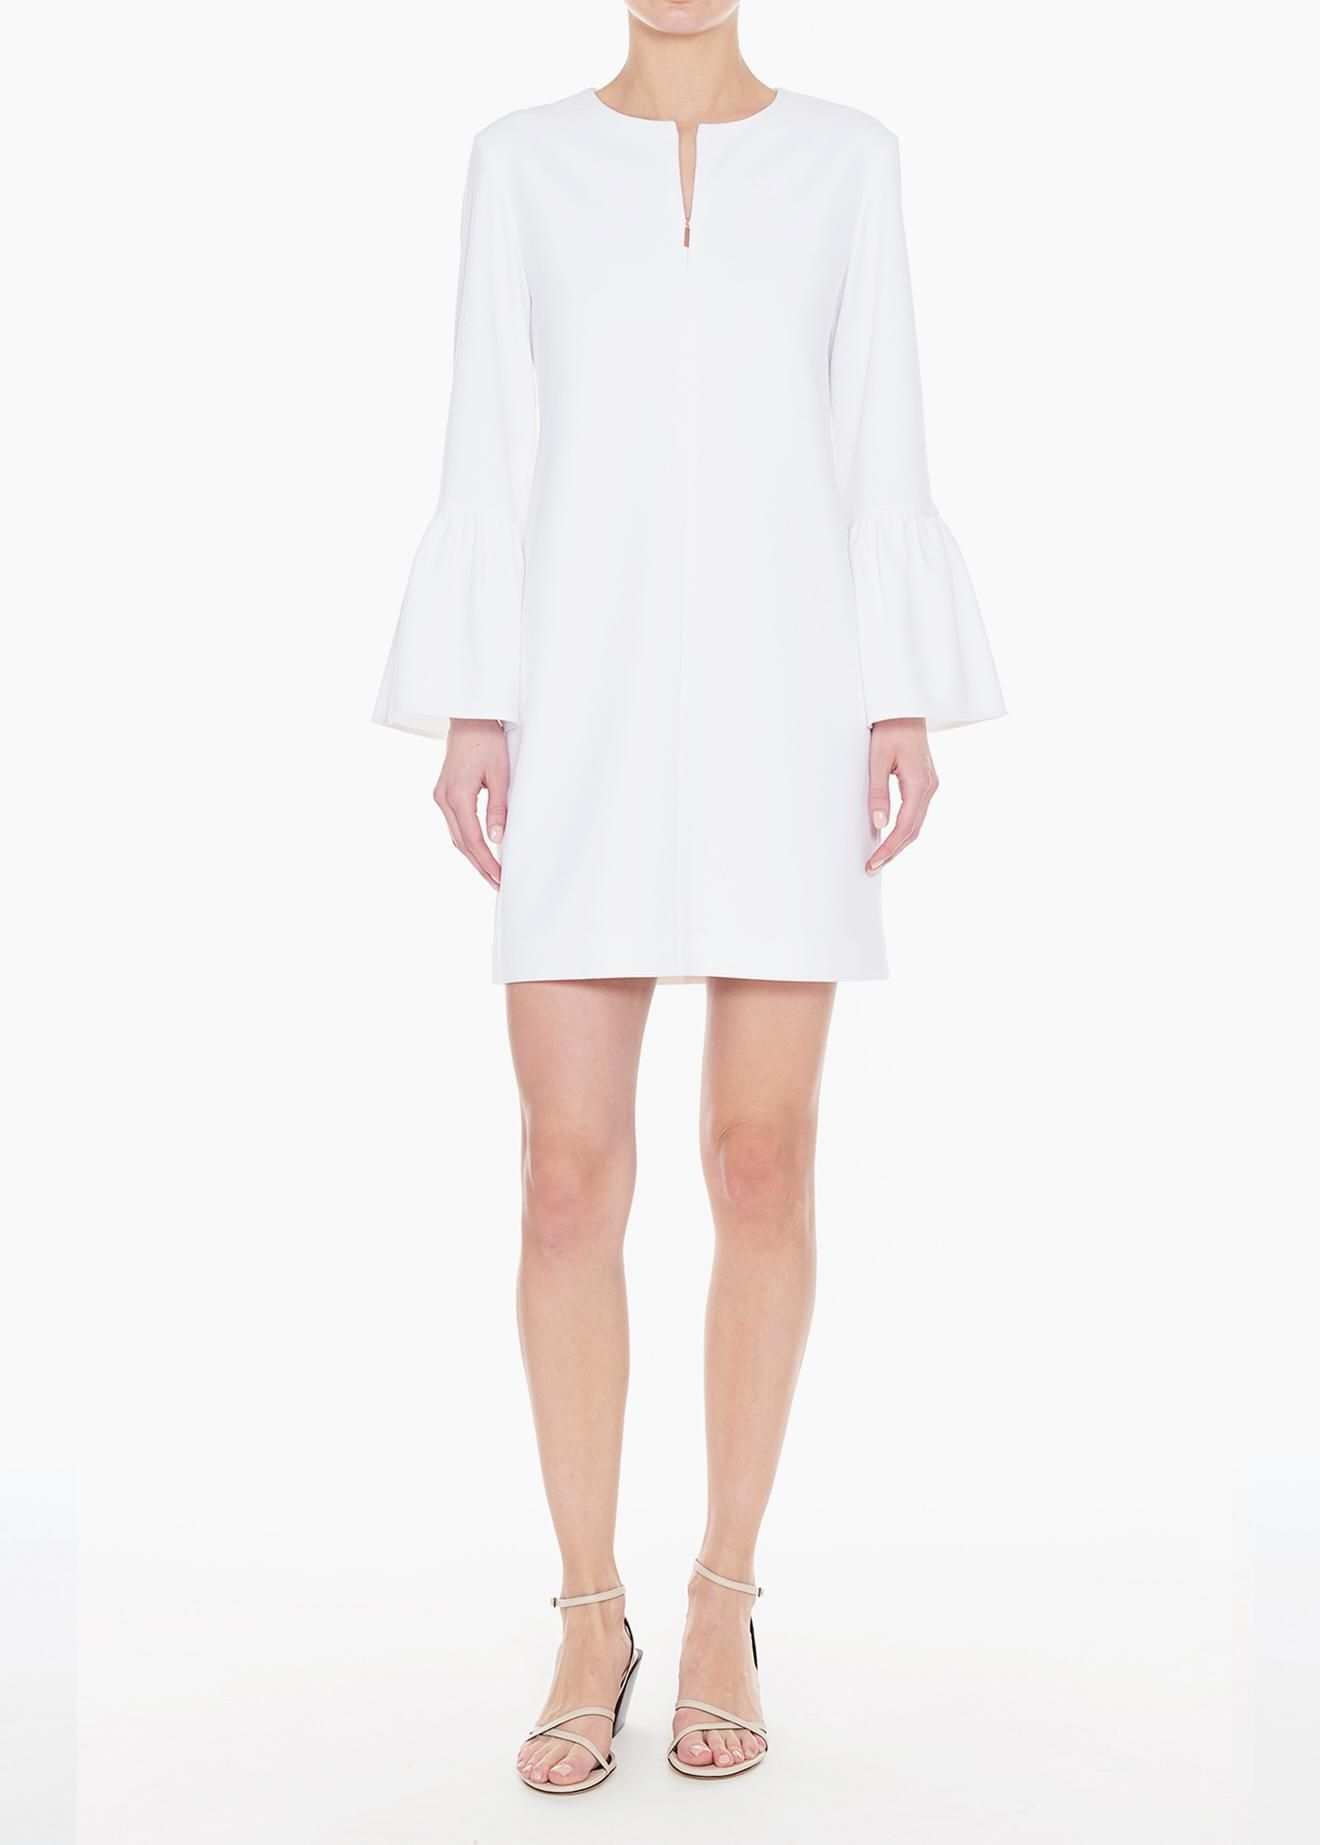 222ad2d3d2848c Lyst - Tibi Structured Crepe Ruffle Sleeve Shift Dress in White - Save  49.87341772151899%